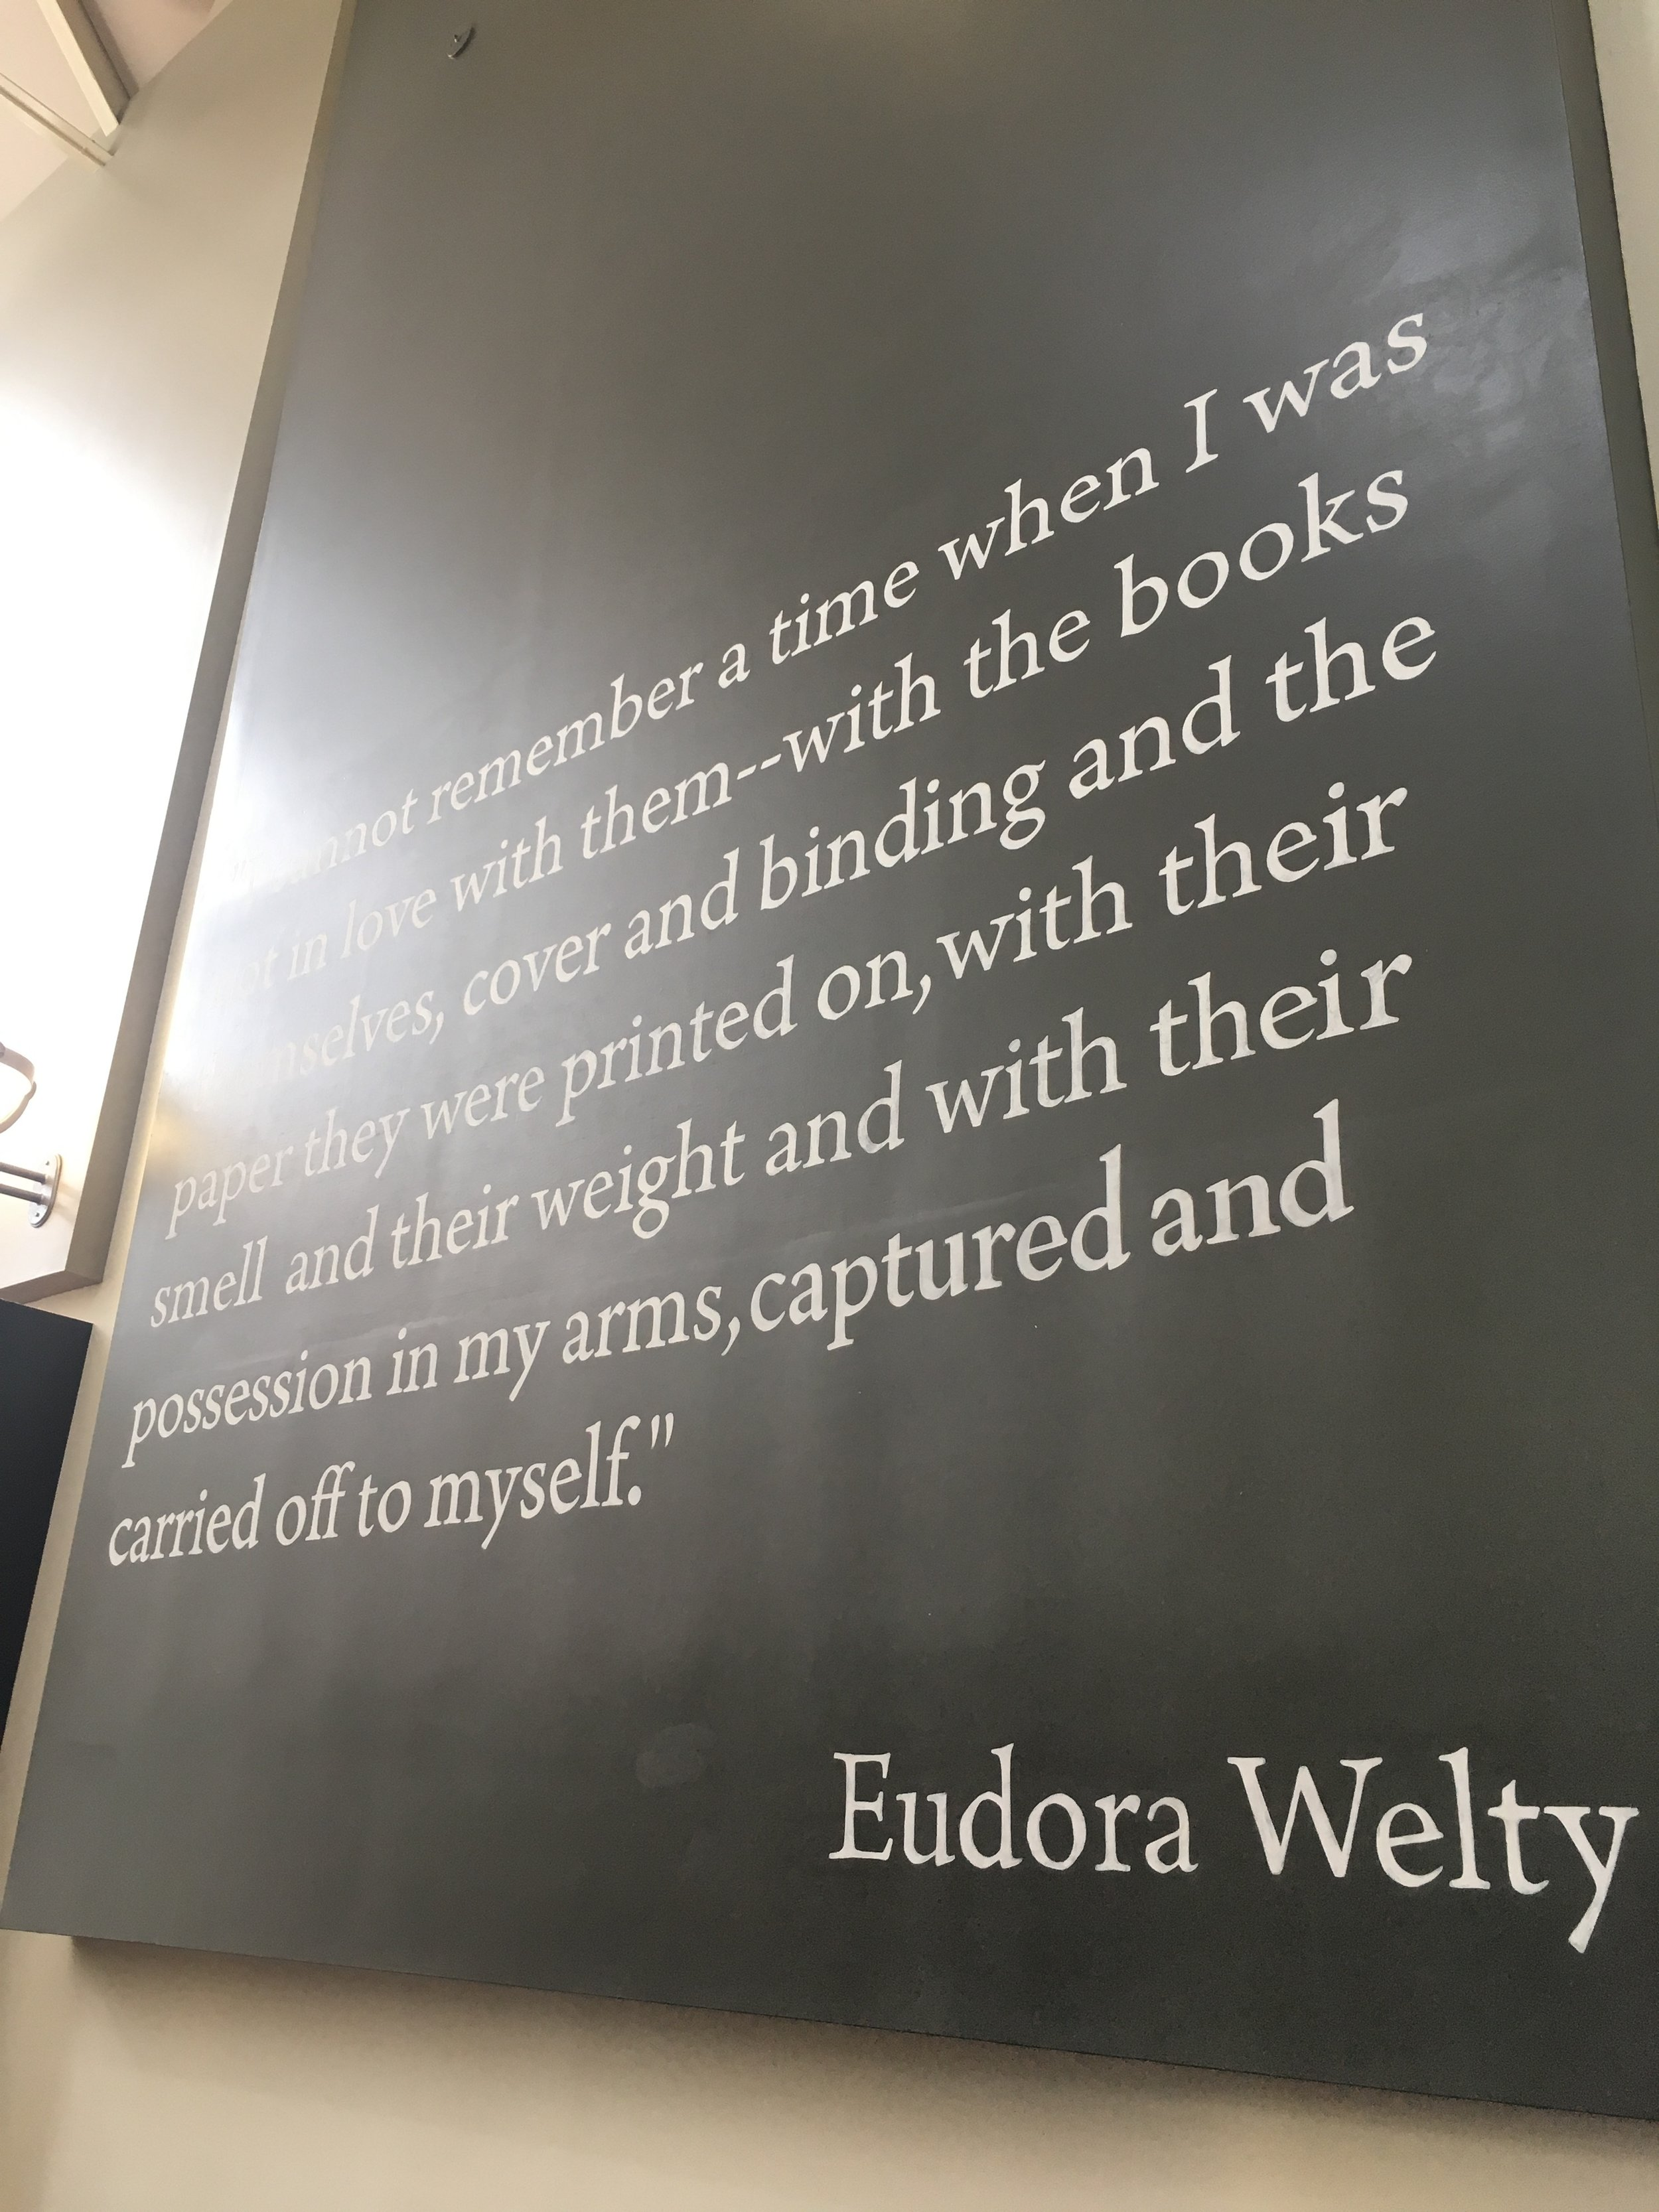 Eudora Welty quote hanging on a wall outside Lemuria Books.